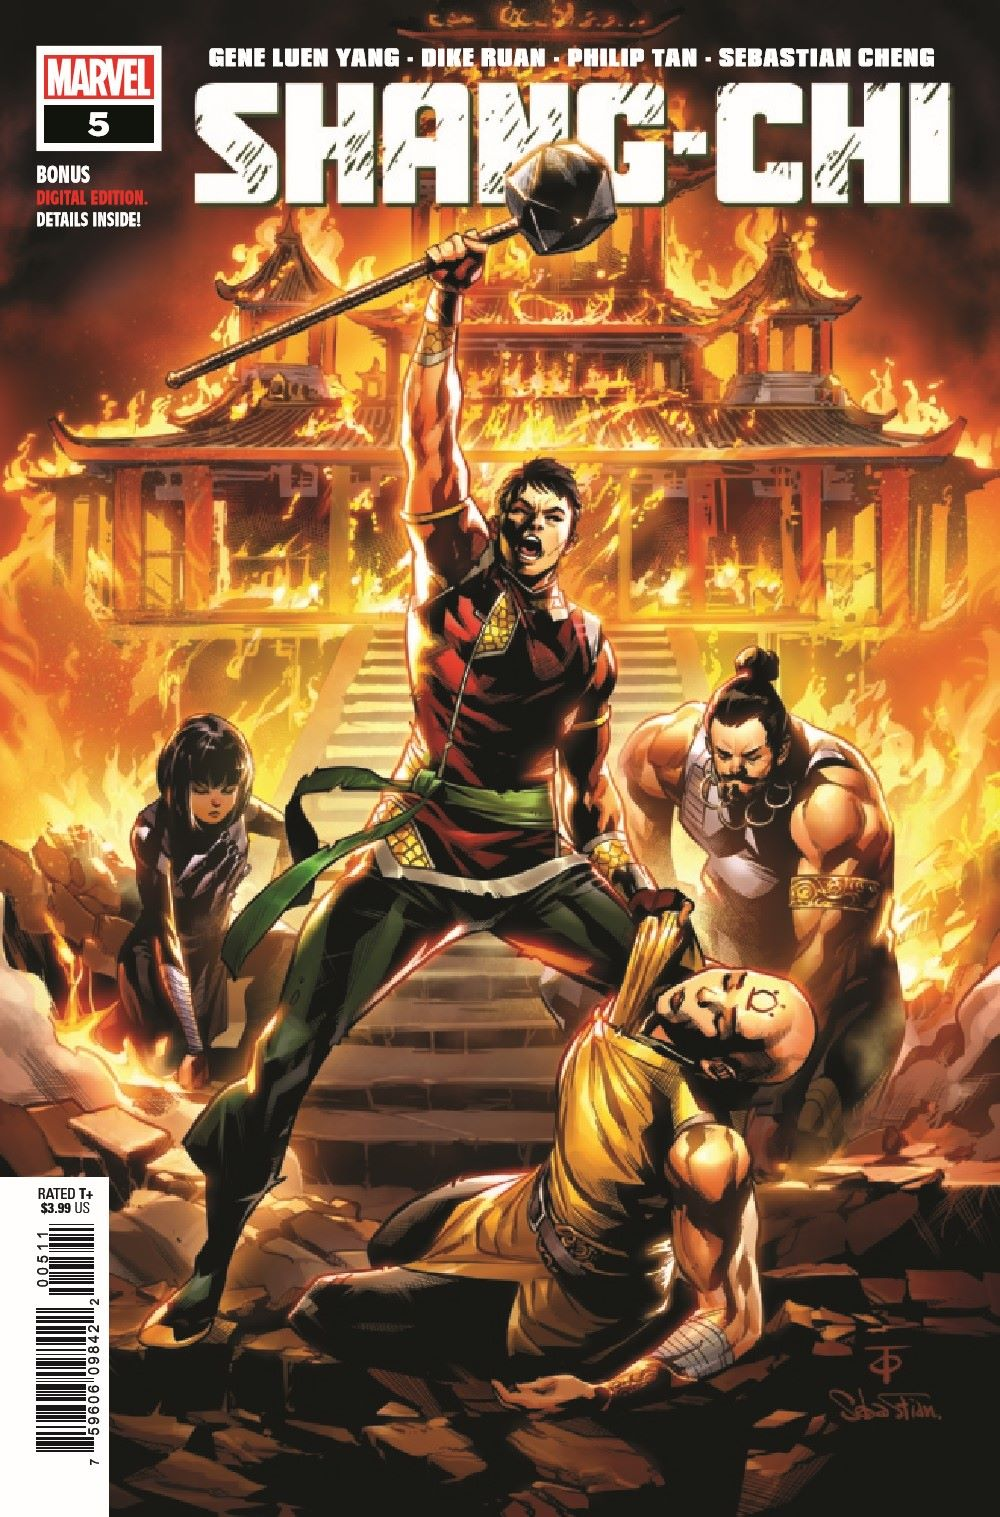 SHANGCHI2020005_Preview-1 ComicList Previews: SHANG-CHI #5 (OF 5)